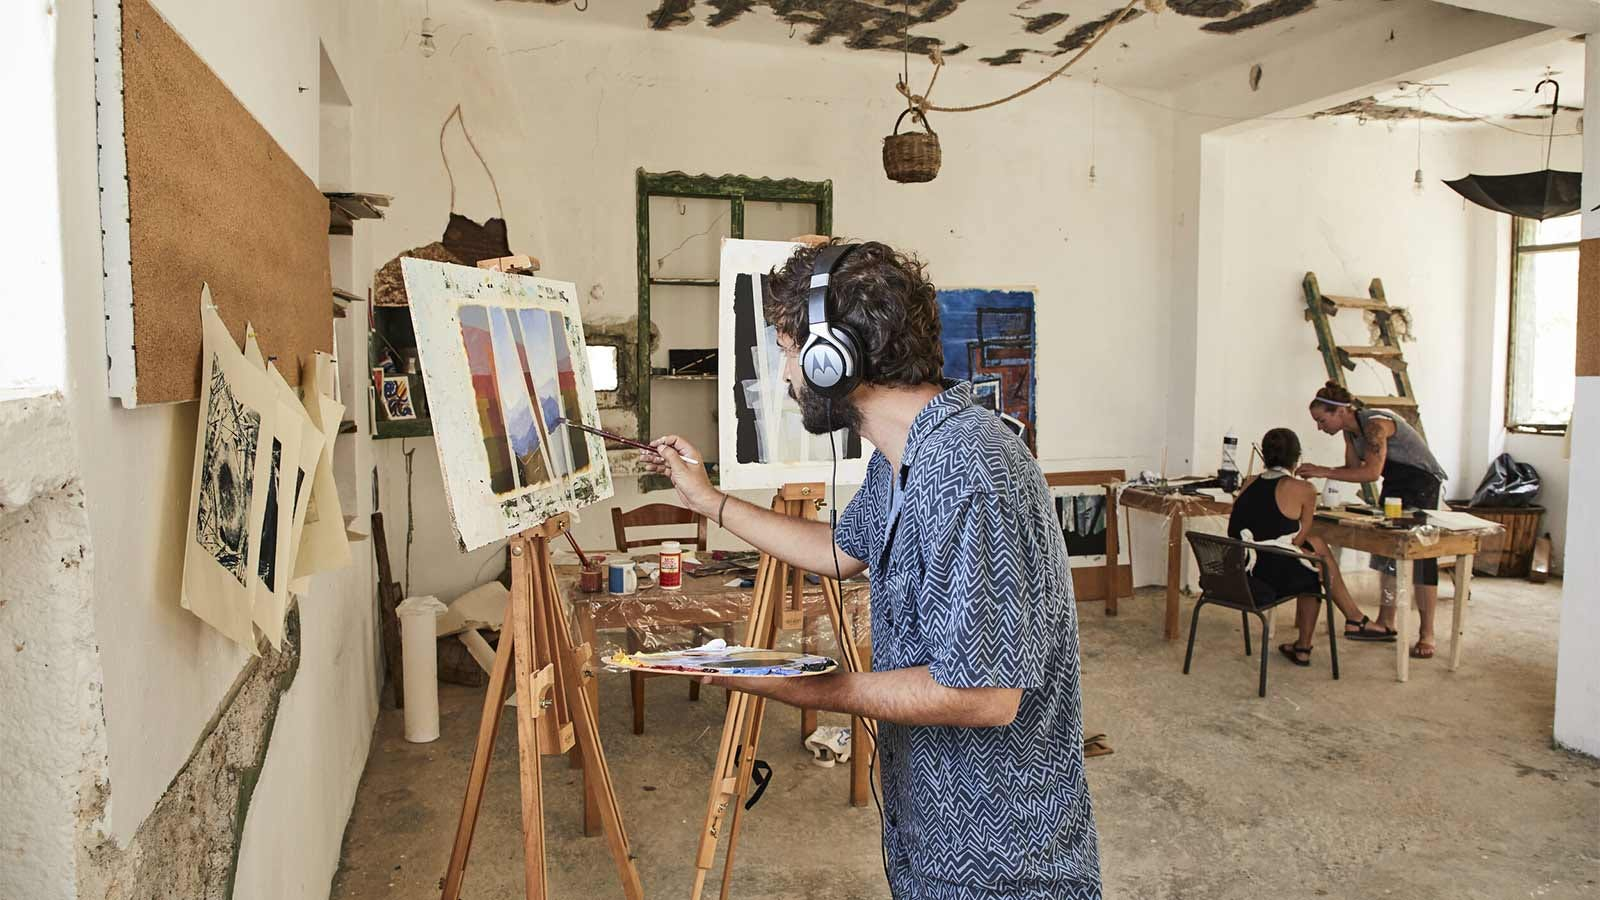 A man painting a canvas on an easel in the Mudhouse studio.